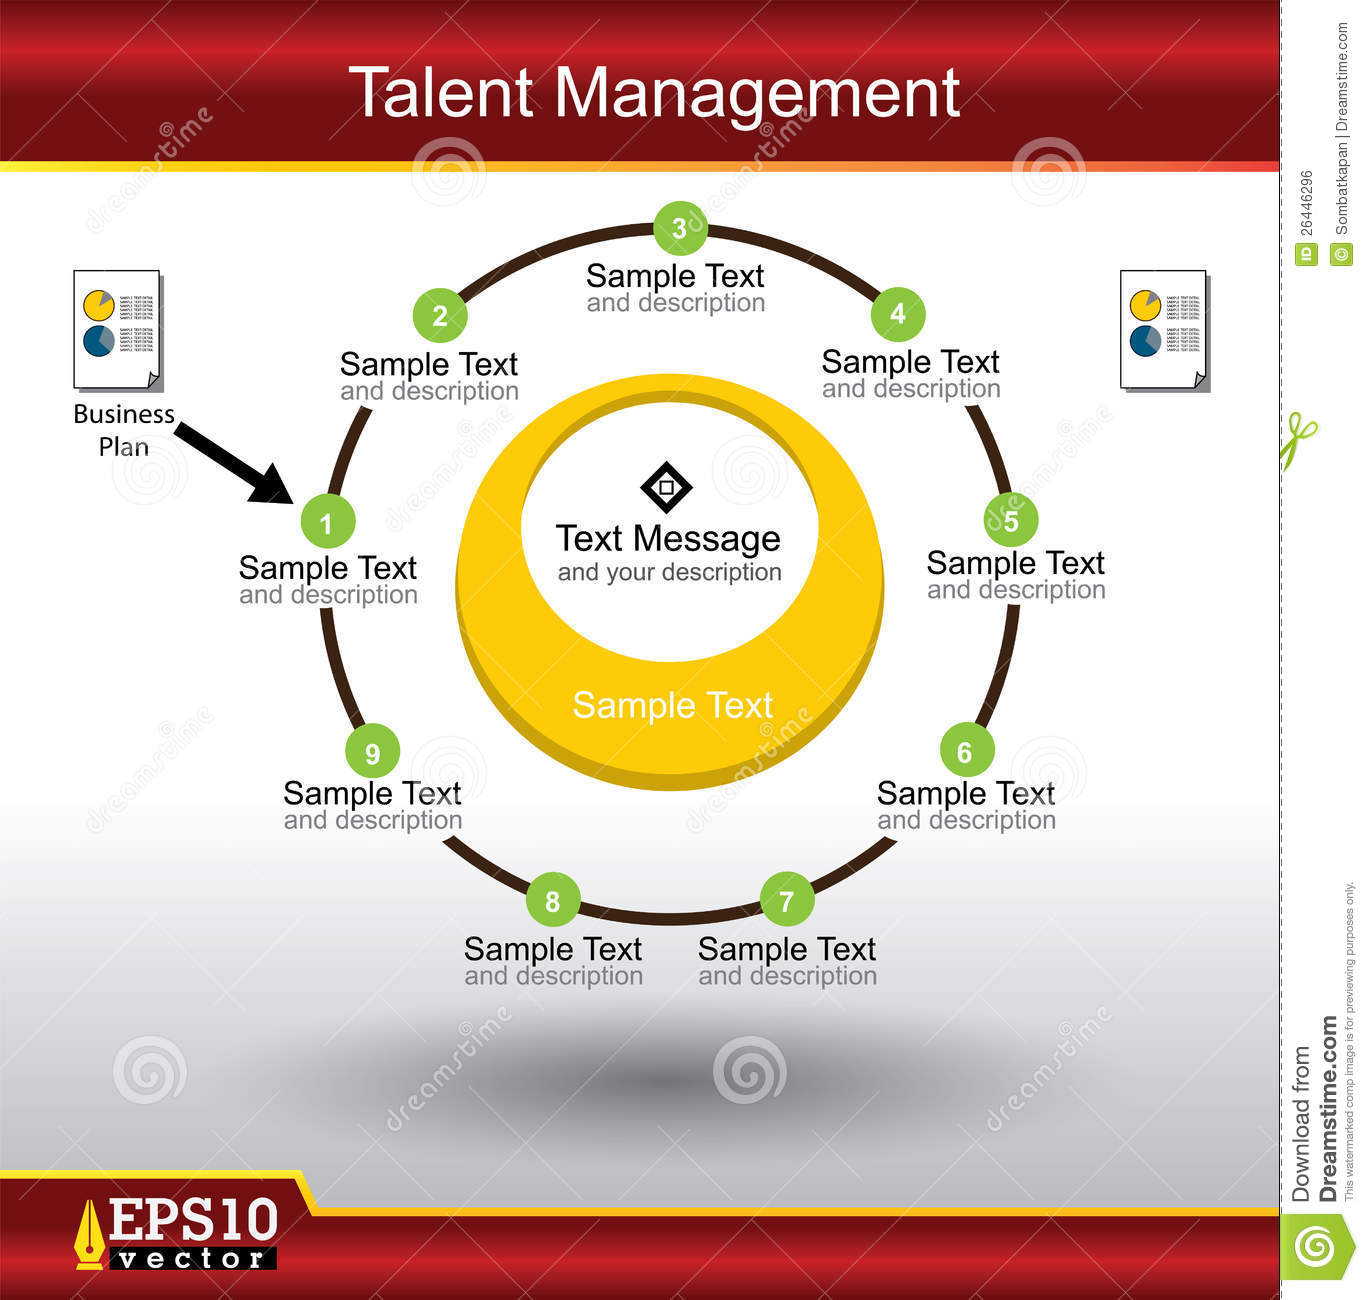 Talent Management Royalty Free Stock Image Image 26446296